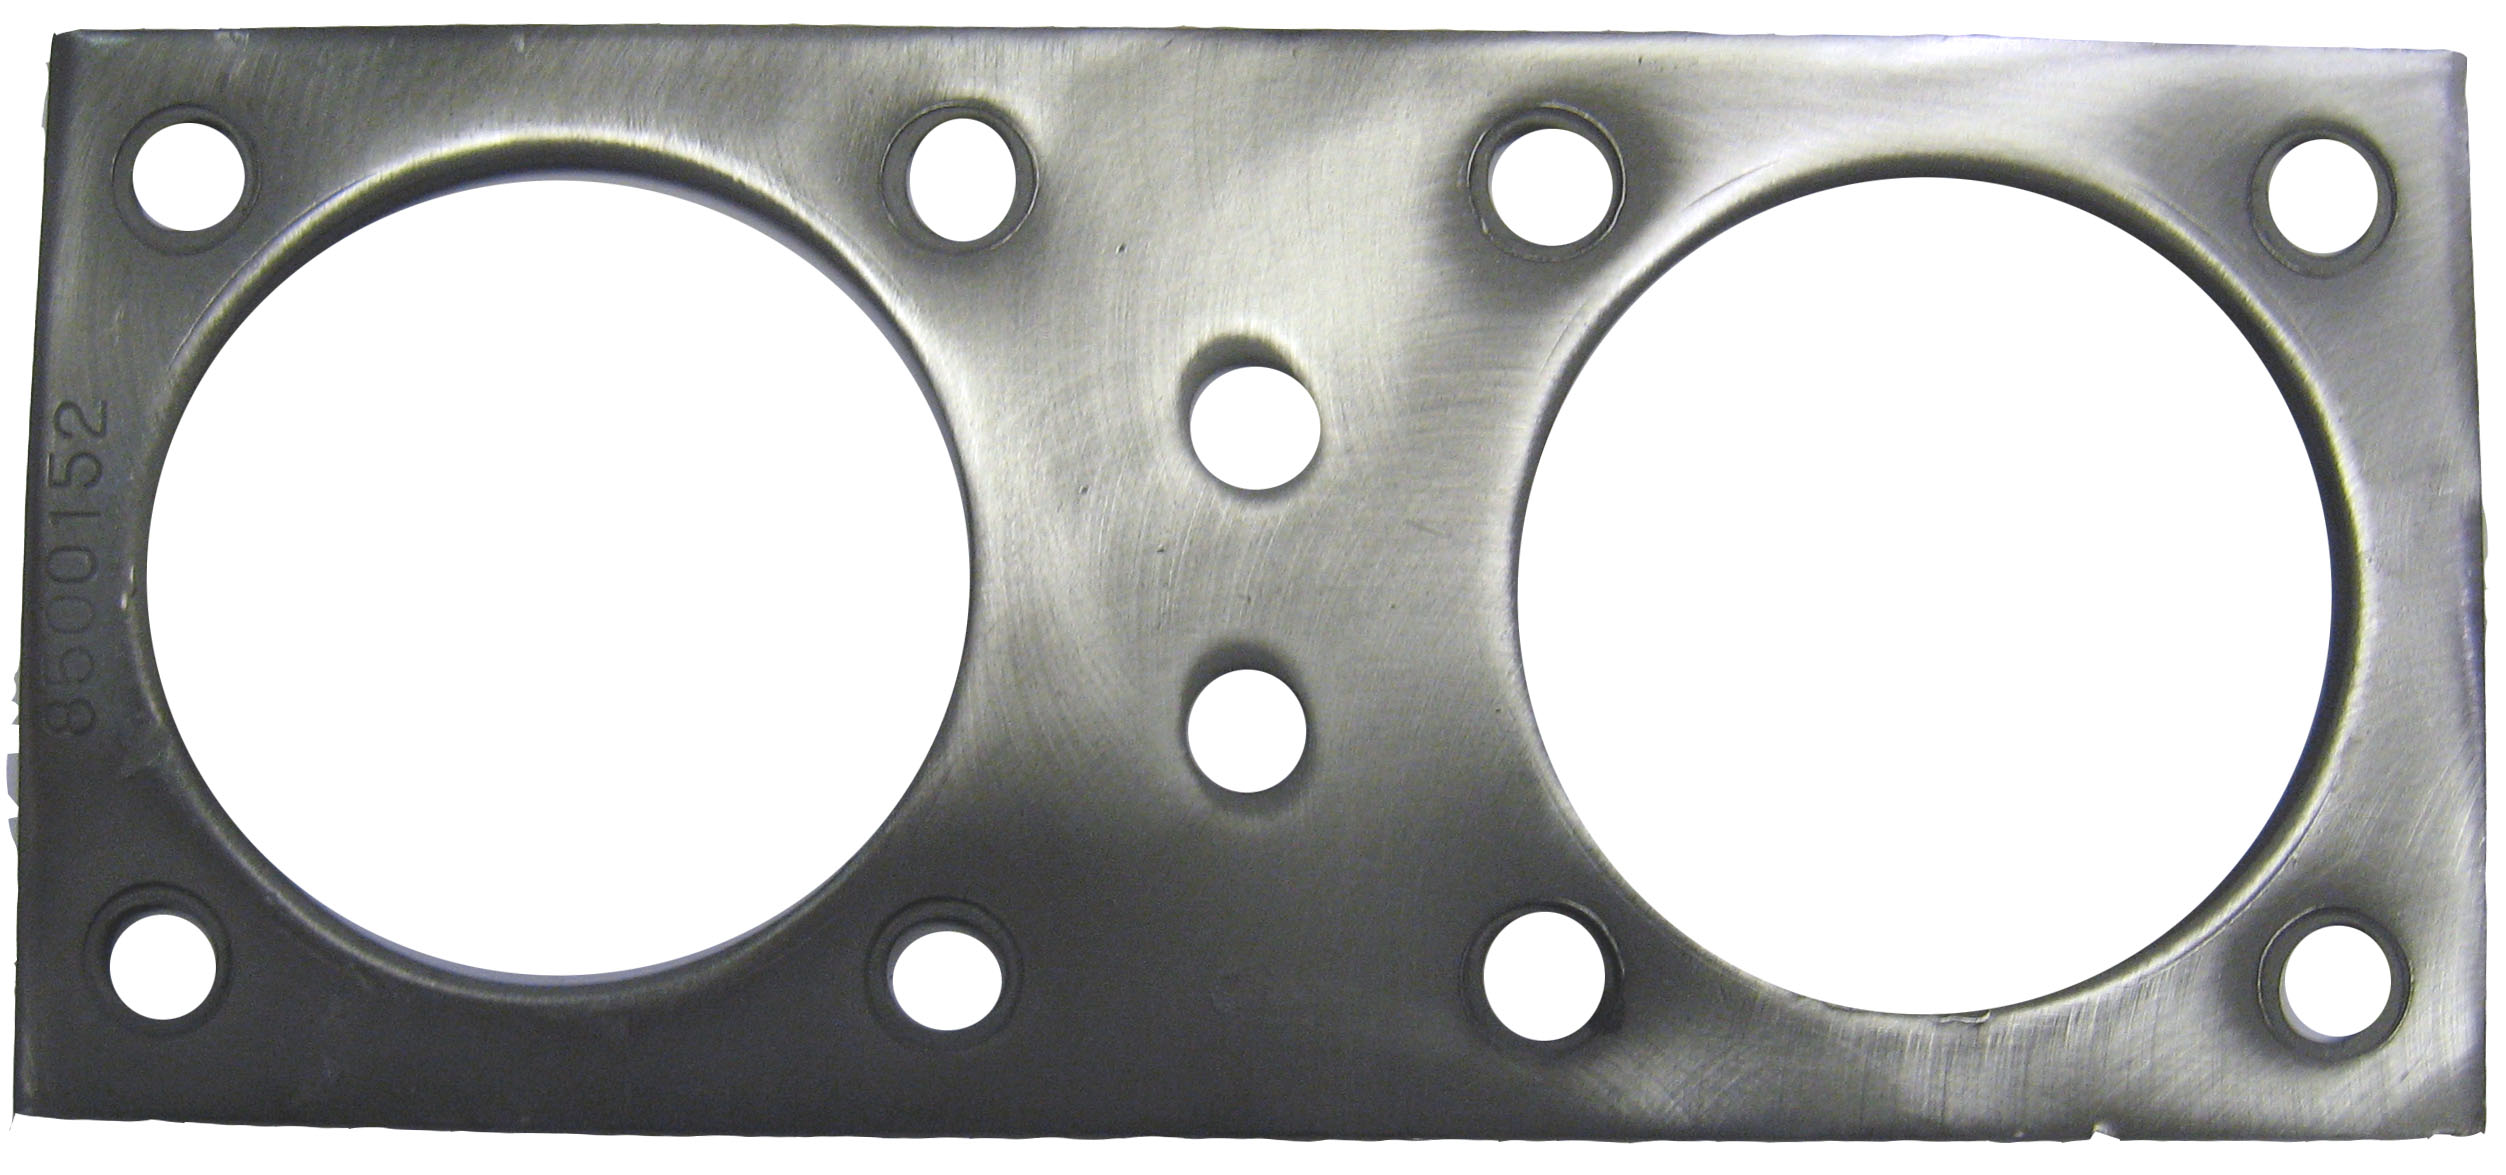 Bearing clamp plate